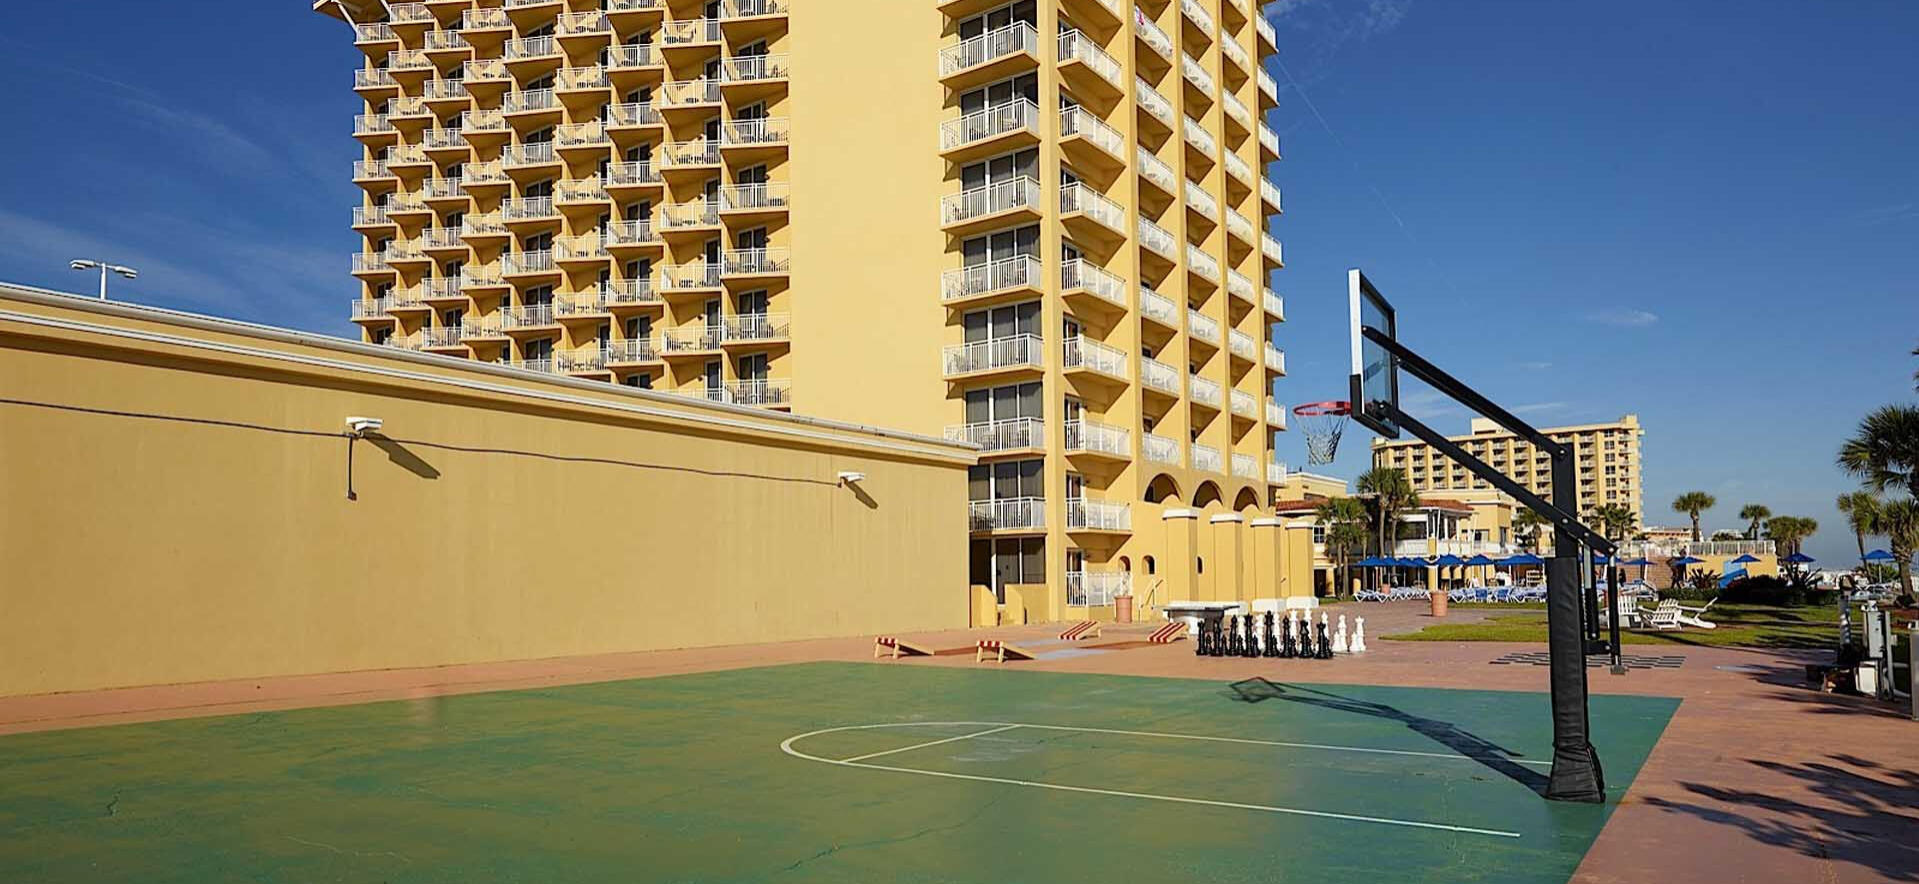 Basketball courts at The Plaza Resort